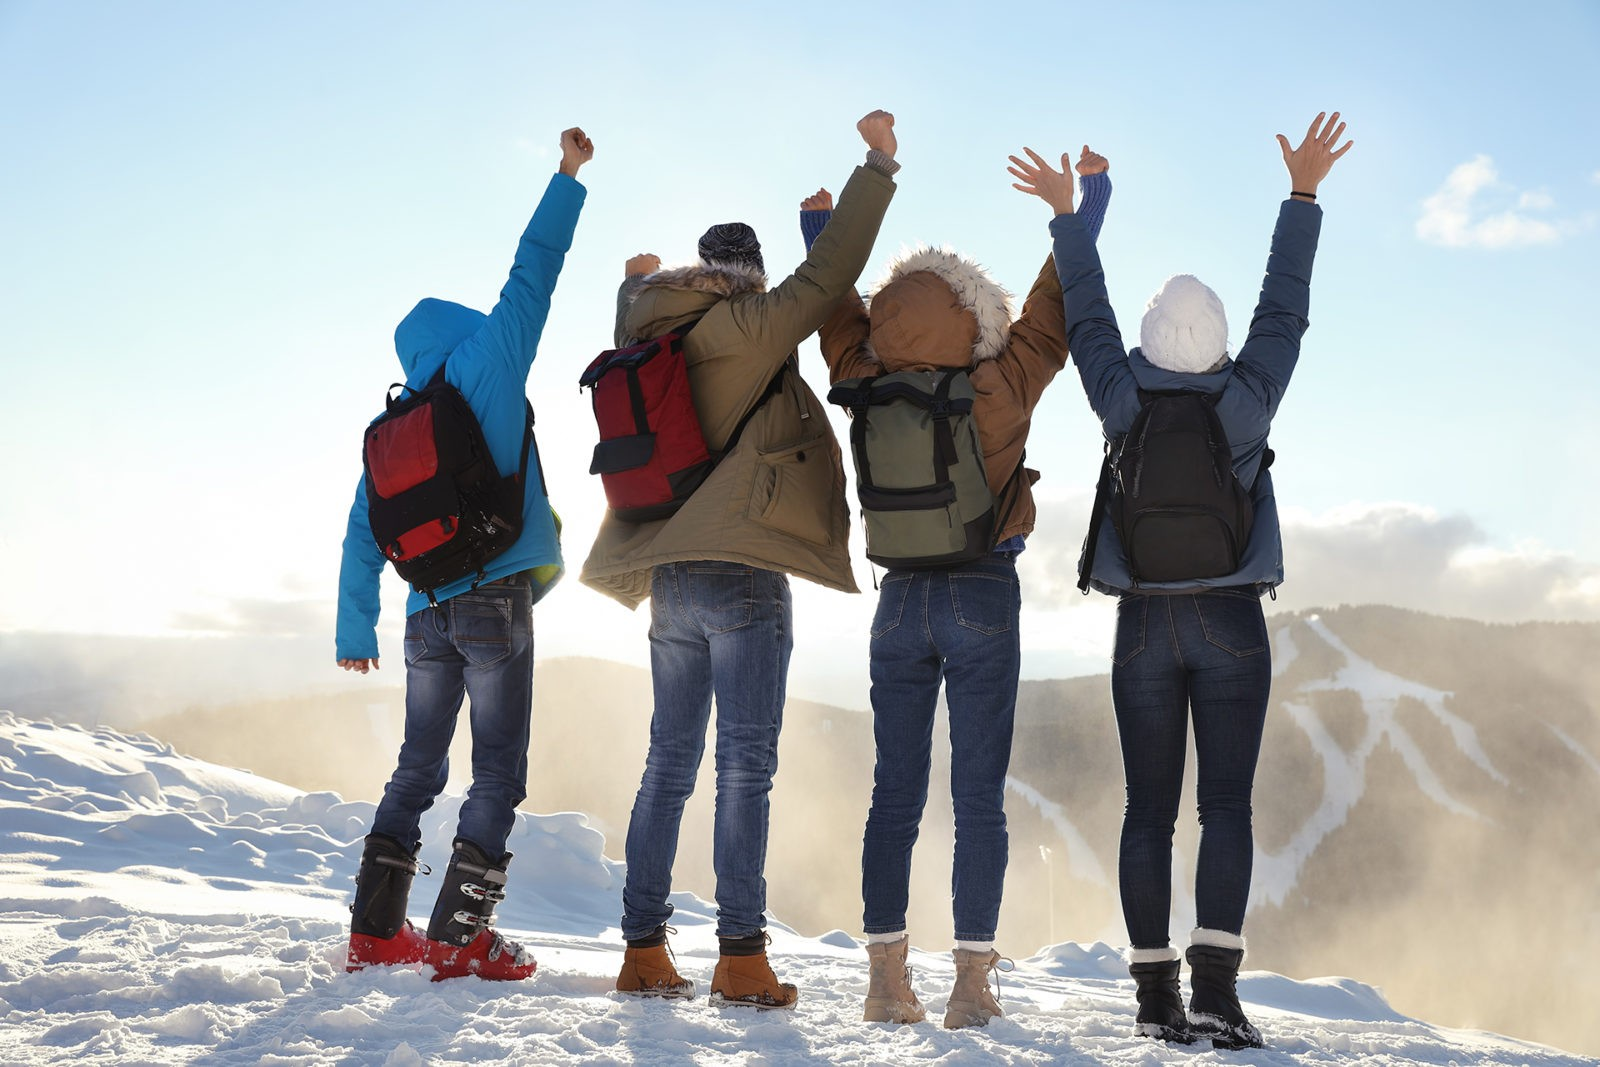 Group of excited friends with backpacks enjoying mountain view during winter vacation